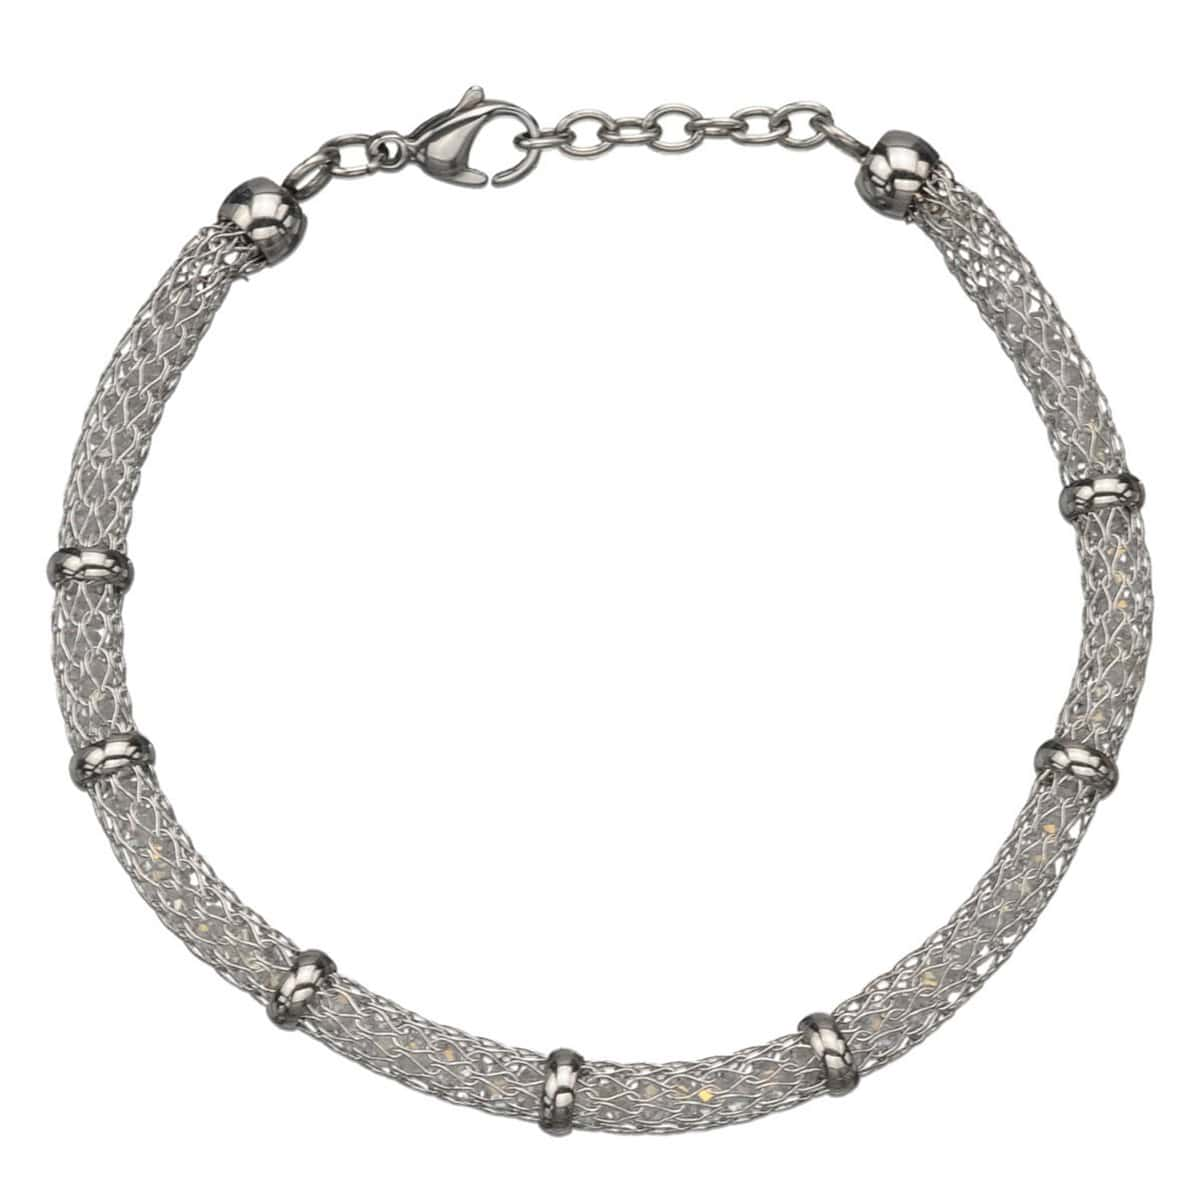 Silver Stainless Steel Thin Polished Net & Bead Bracelet